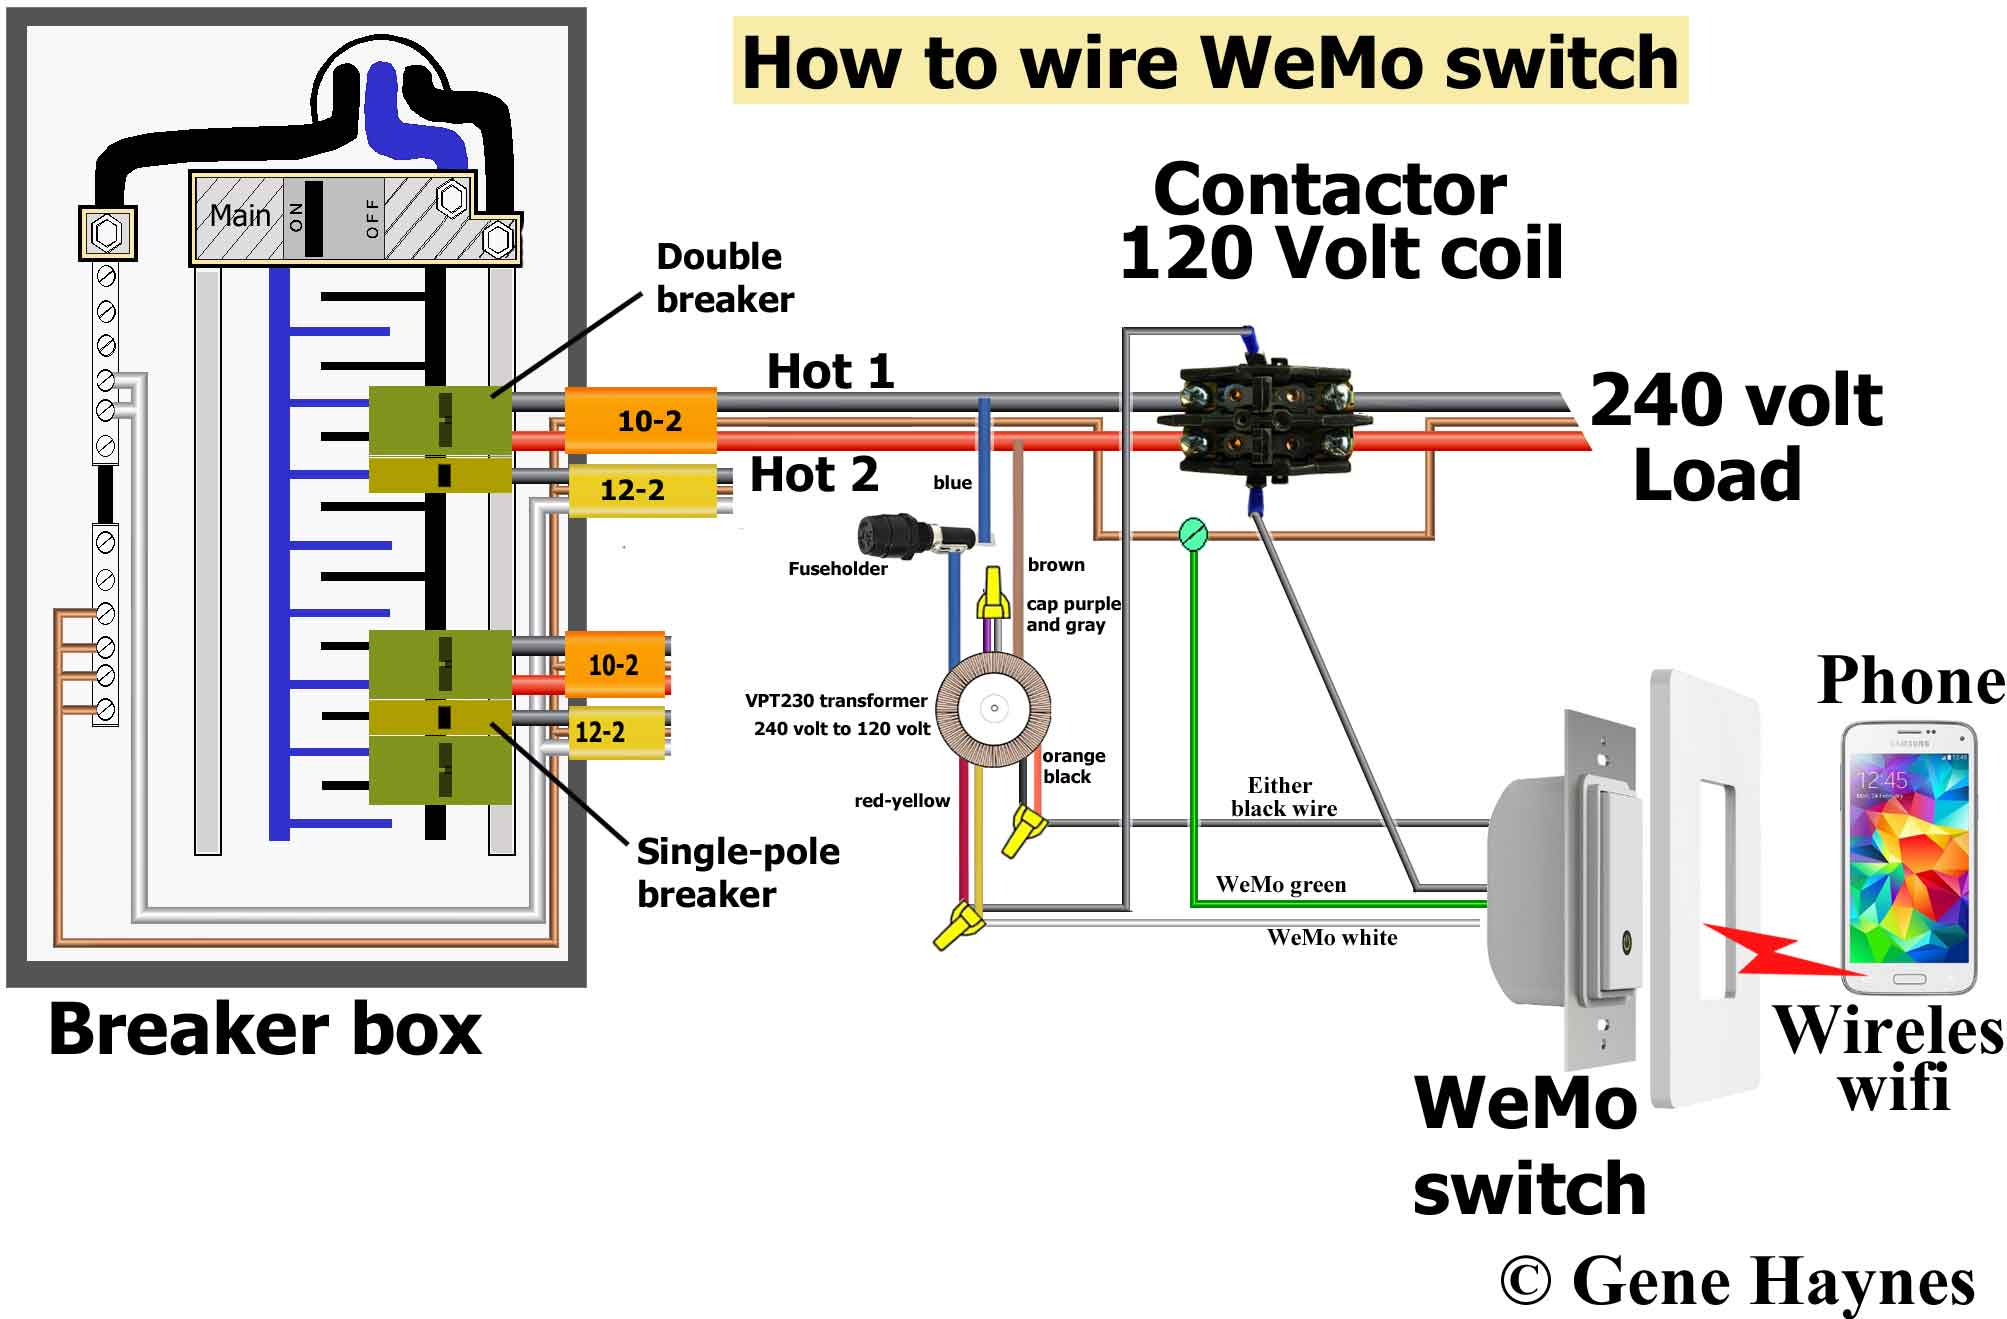 WeMo switch wiring illustration 32a control 240 volt with wemo 240 volt switch wiring diagram at crackthecode.co